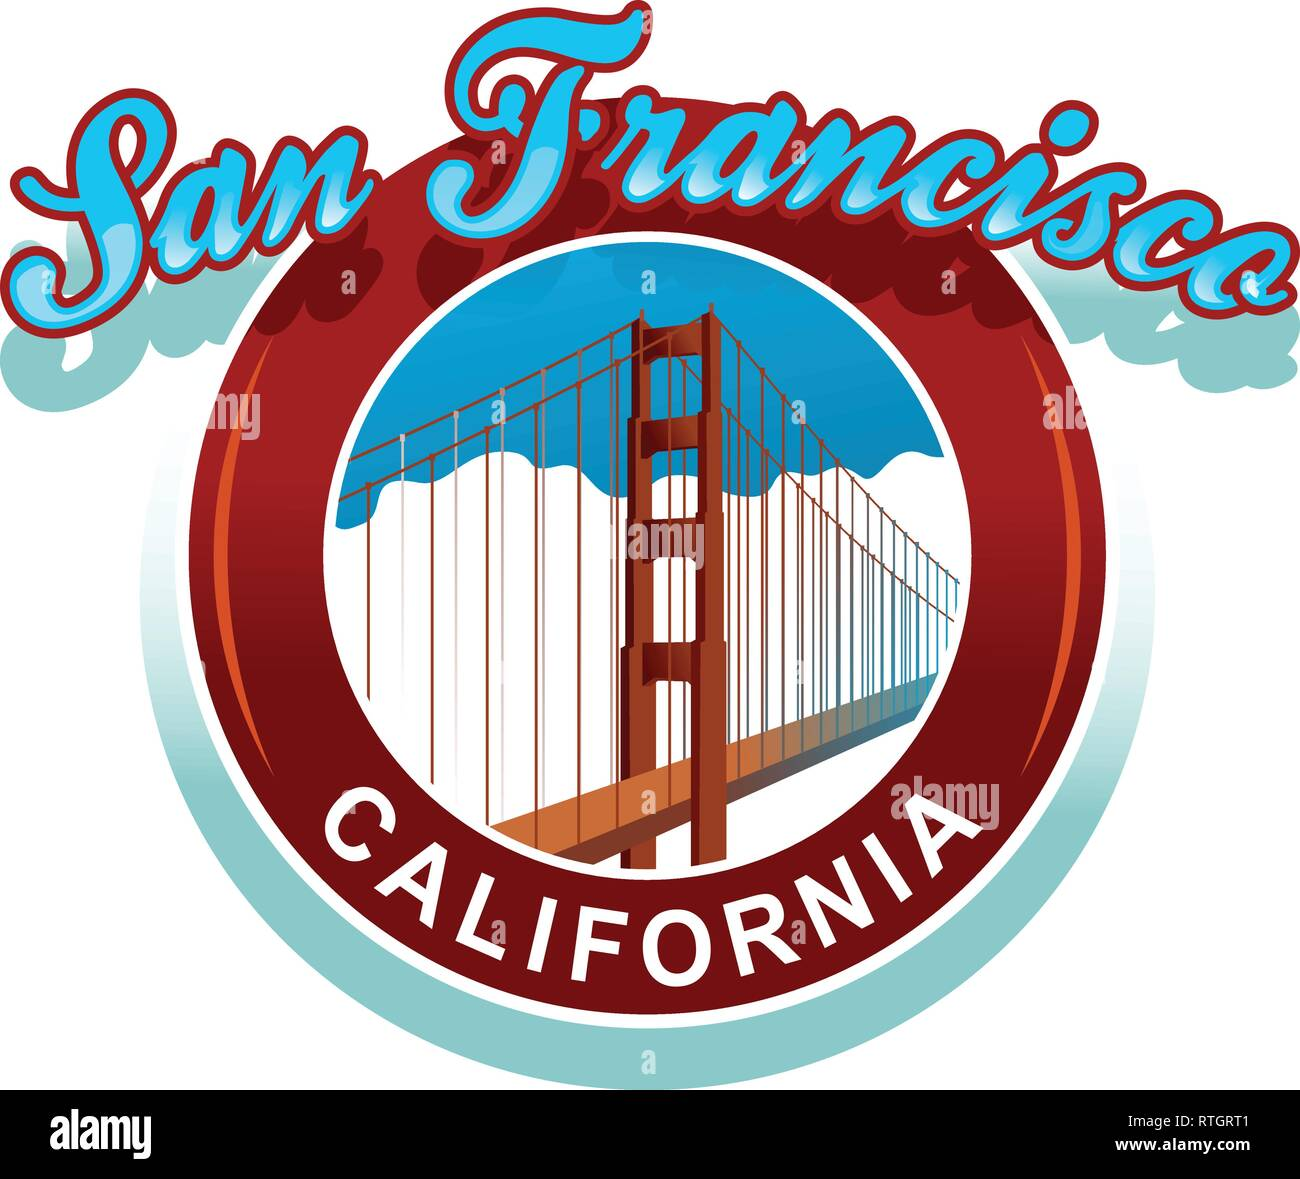 Golden Gate - Stock Vector